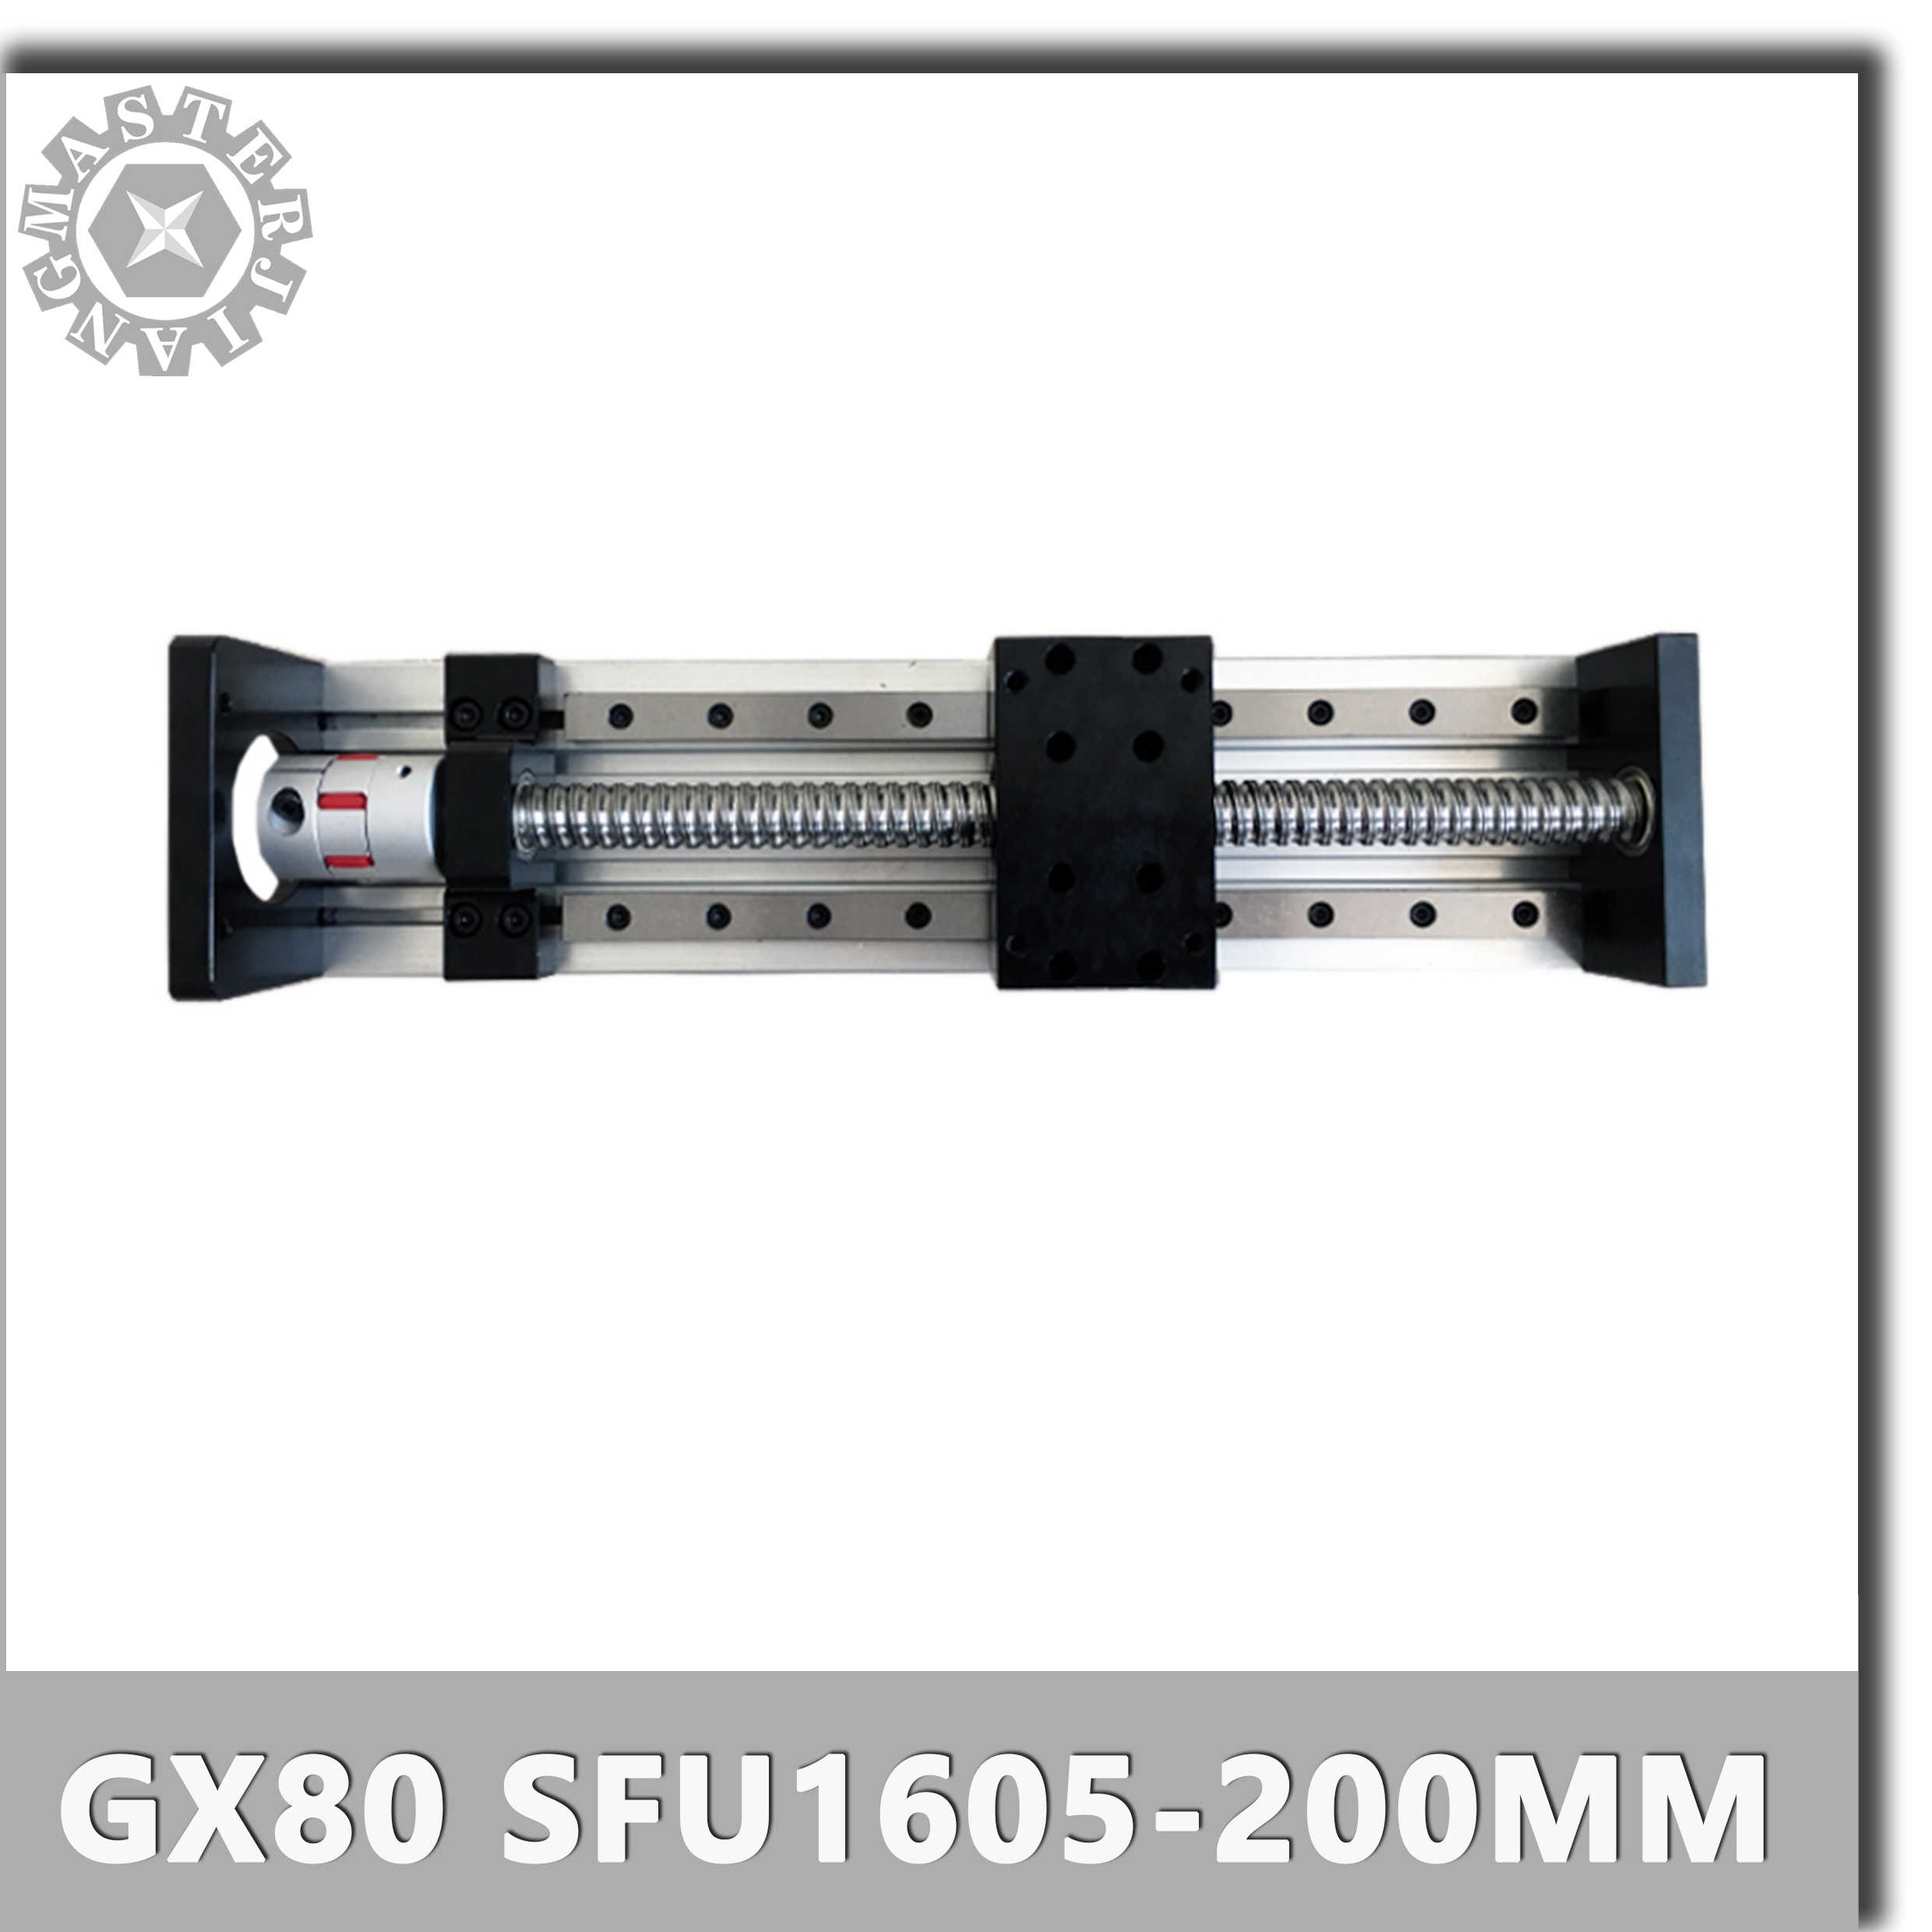 Customized GX80 SFU1605-200mm CNC Linear Guide Rails Linear Actuator System Module Table no Motor+Coupling for 60ST Servo Motor.